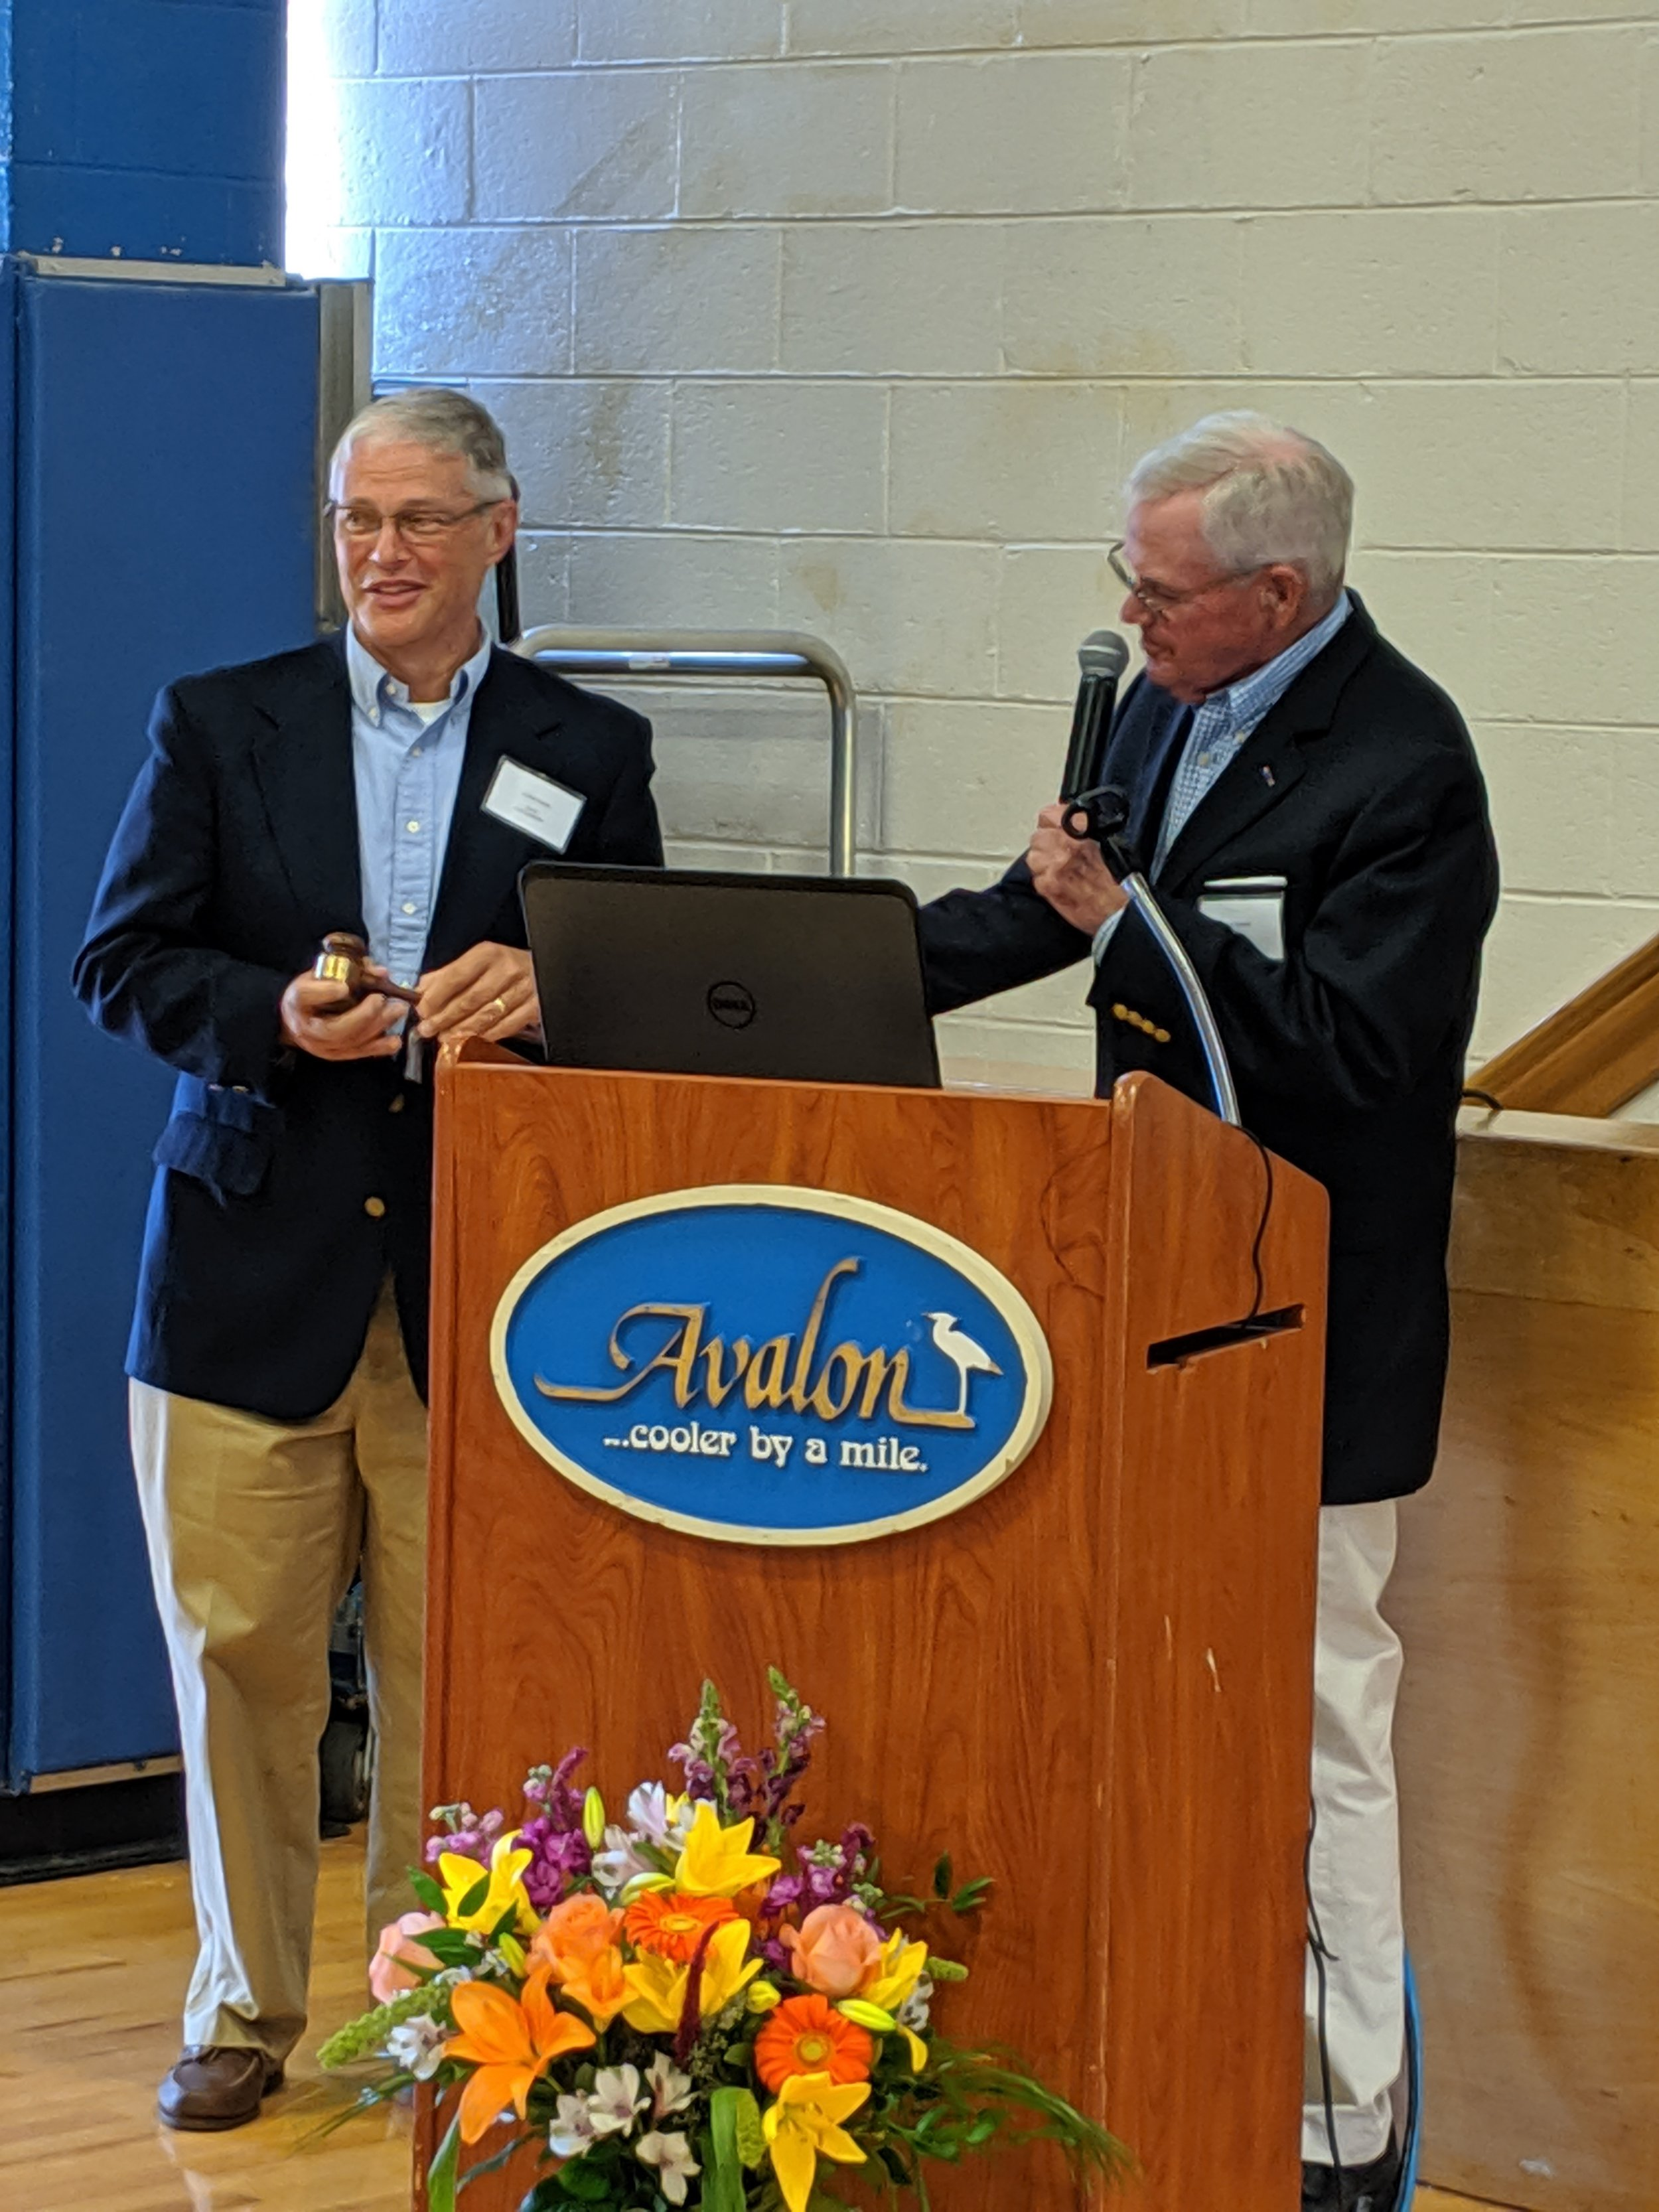 Incoming AHLOA President Chuck O'Hara (left) and outgoing President Jack Keenan (right)